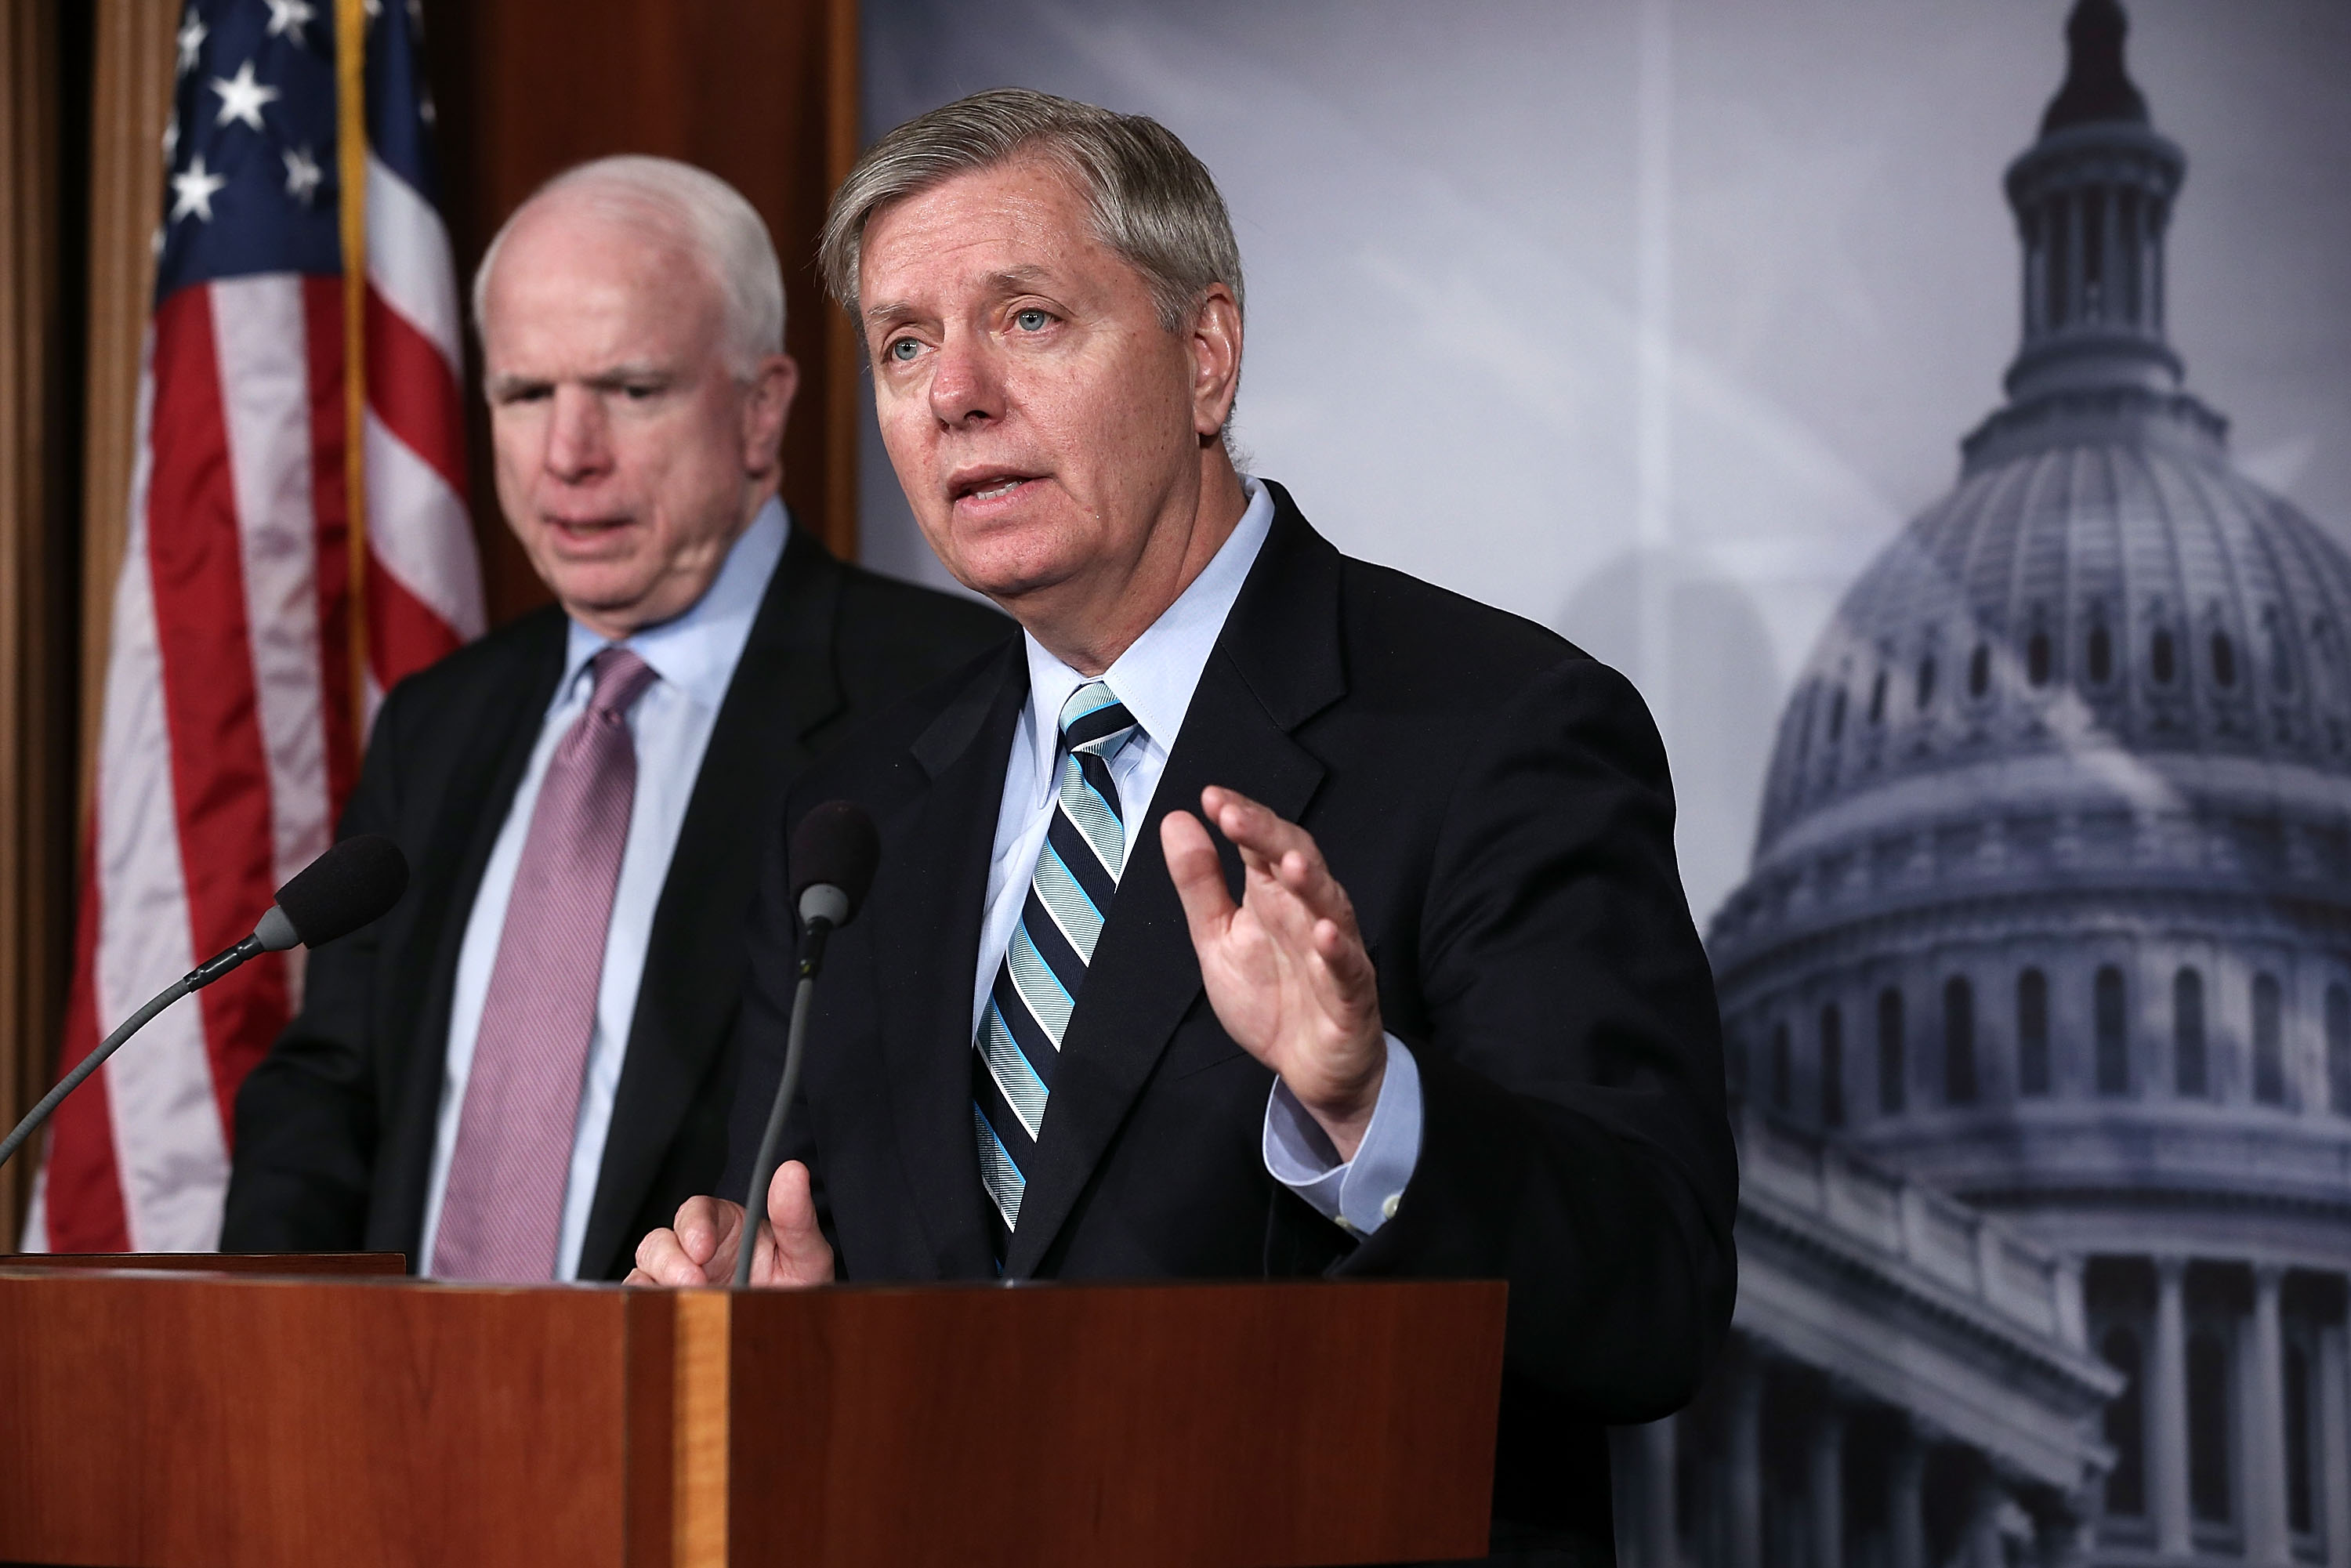 Lindsey Graham dropping out is a surprisingly big opportunity for the GOP establishment